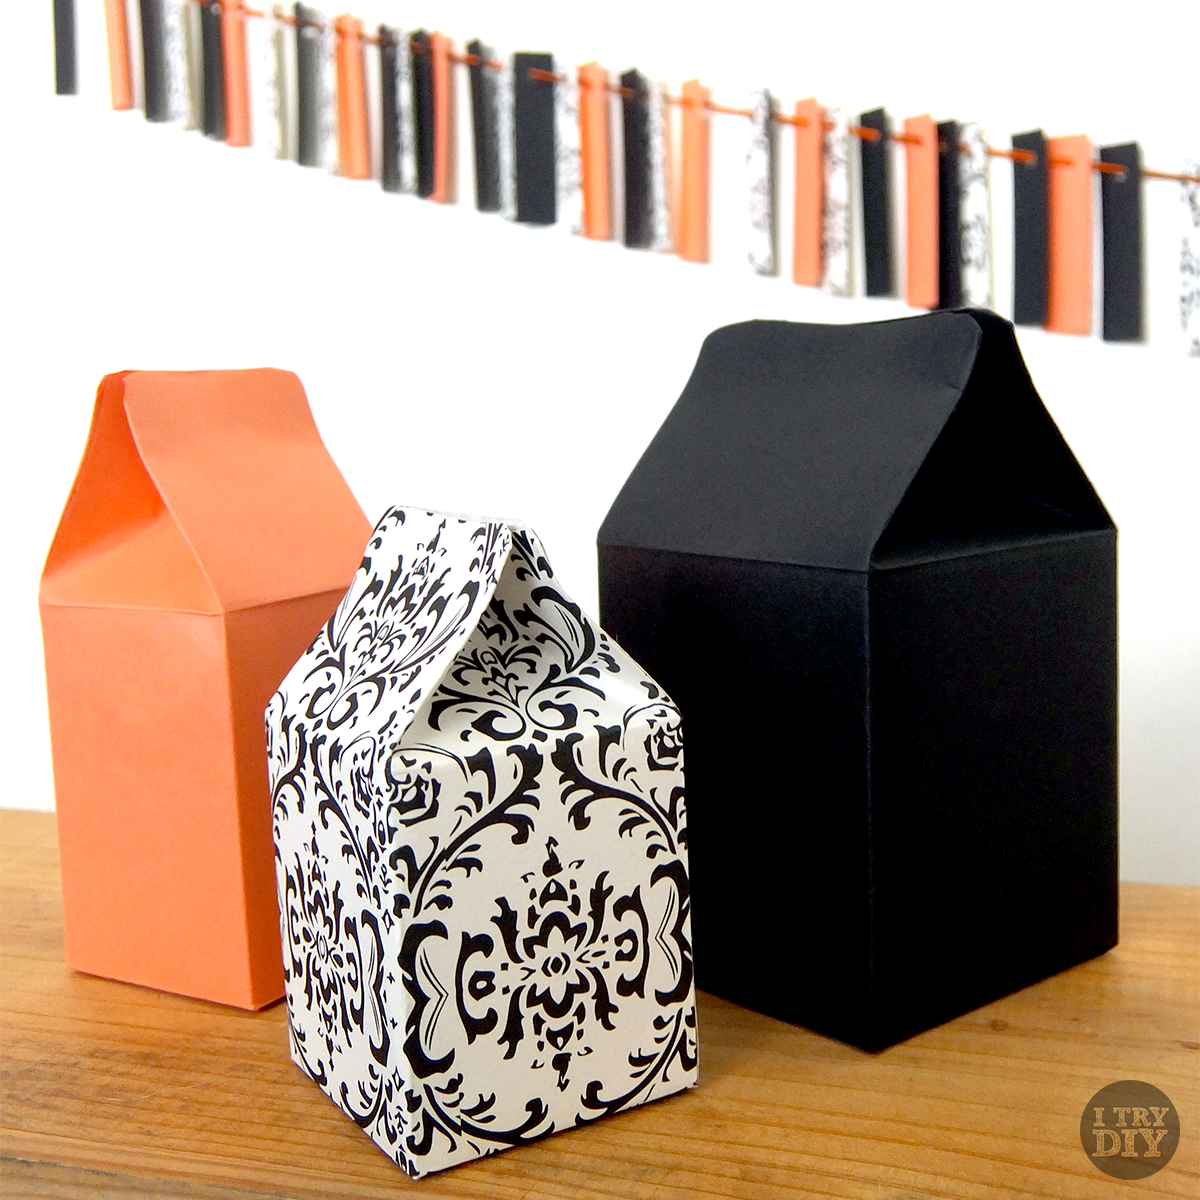 http://www.itrydiy.me/2013/10/weekly-wrap-up-diy-mini-milk-cartons.html